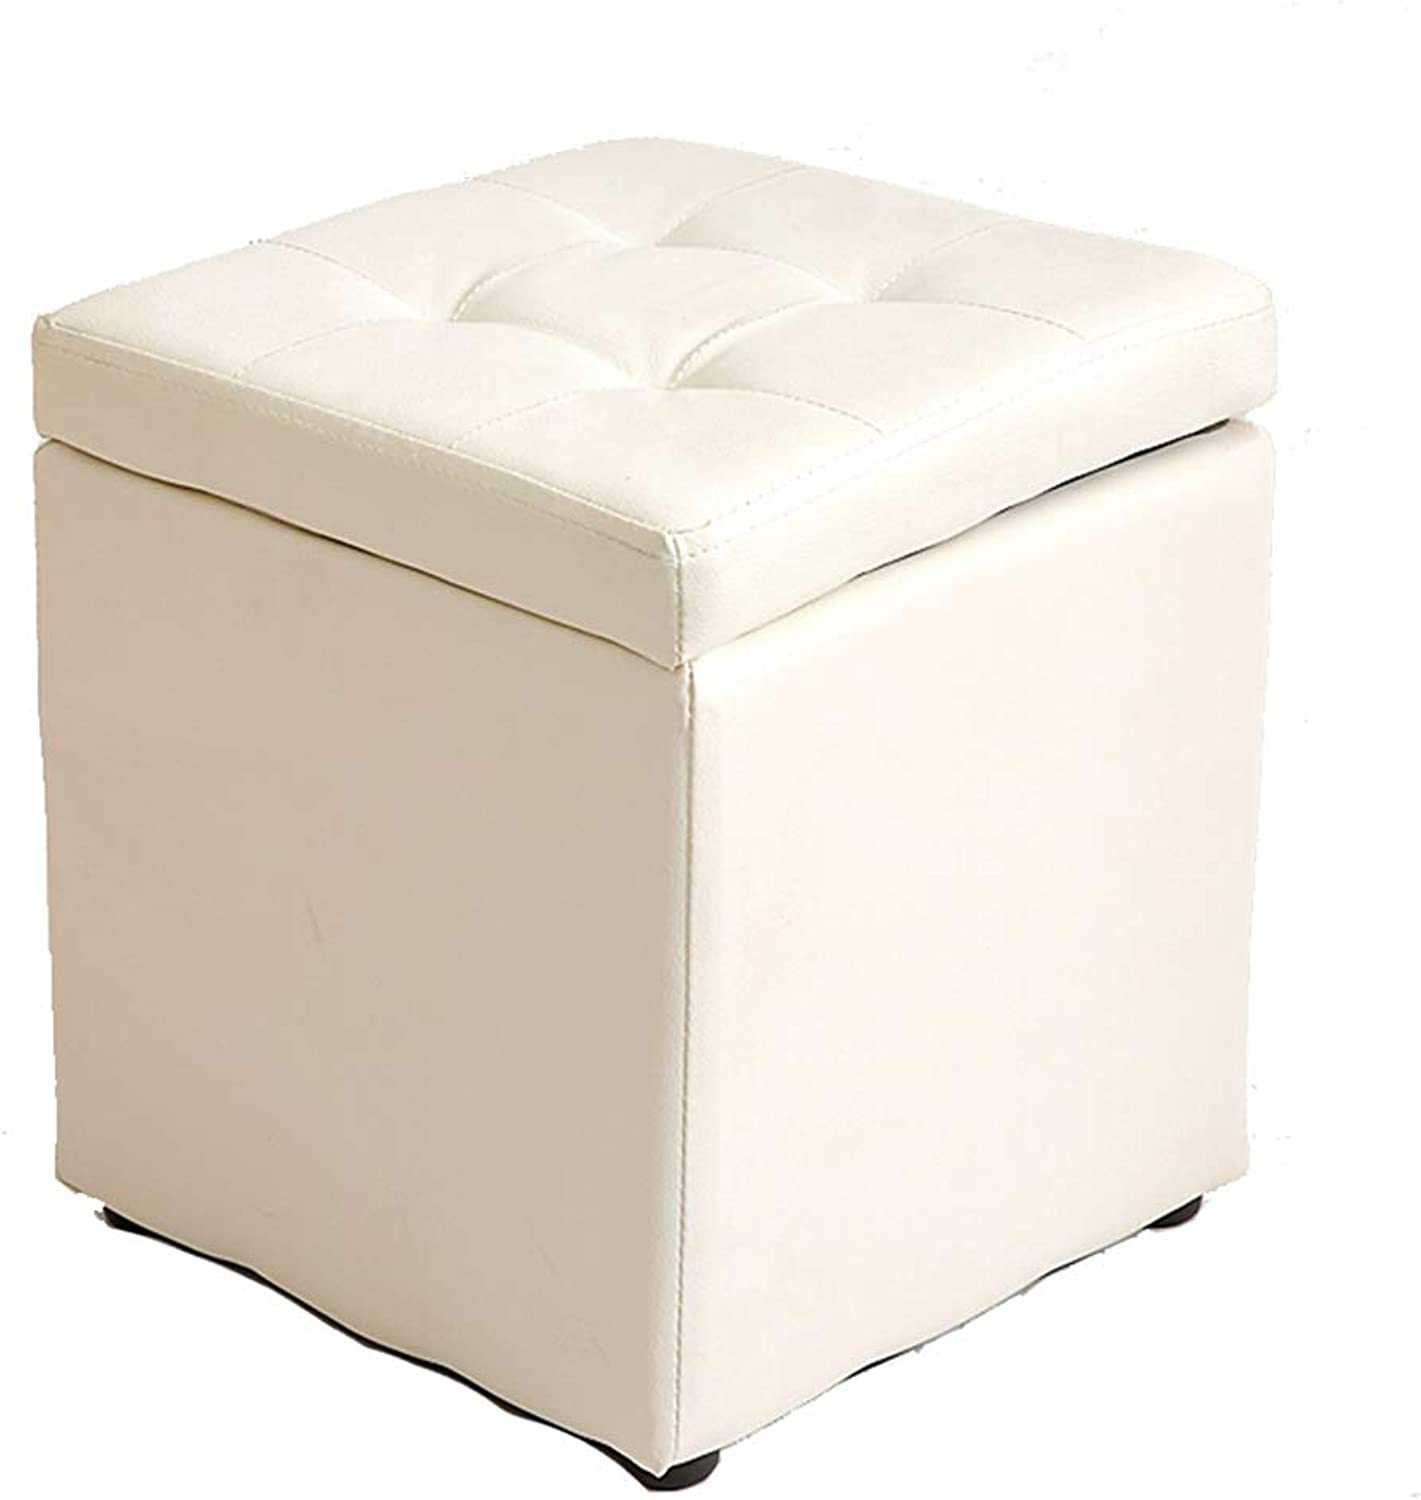 Small Stool-Storage Stool Leather Bench Change shoes Bench Pier Hall Sofa Stool Storage Stool Footstool shoes Bench FENPING (color   K, Size   30  30  35cm)